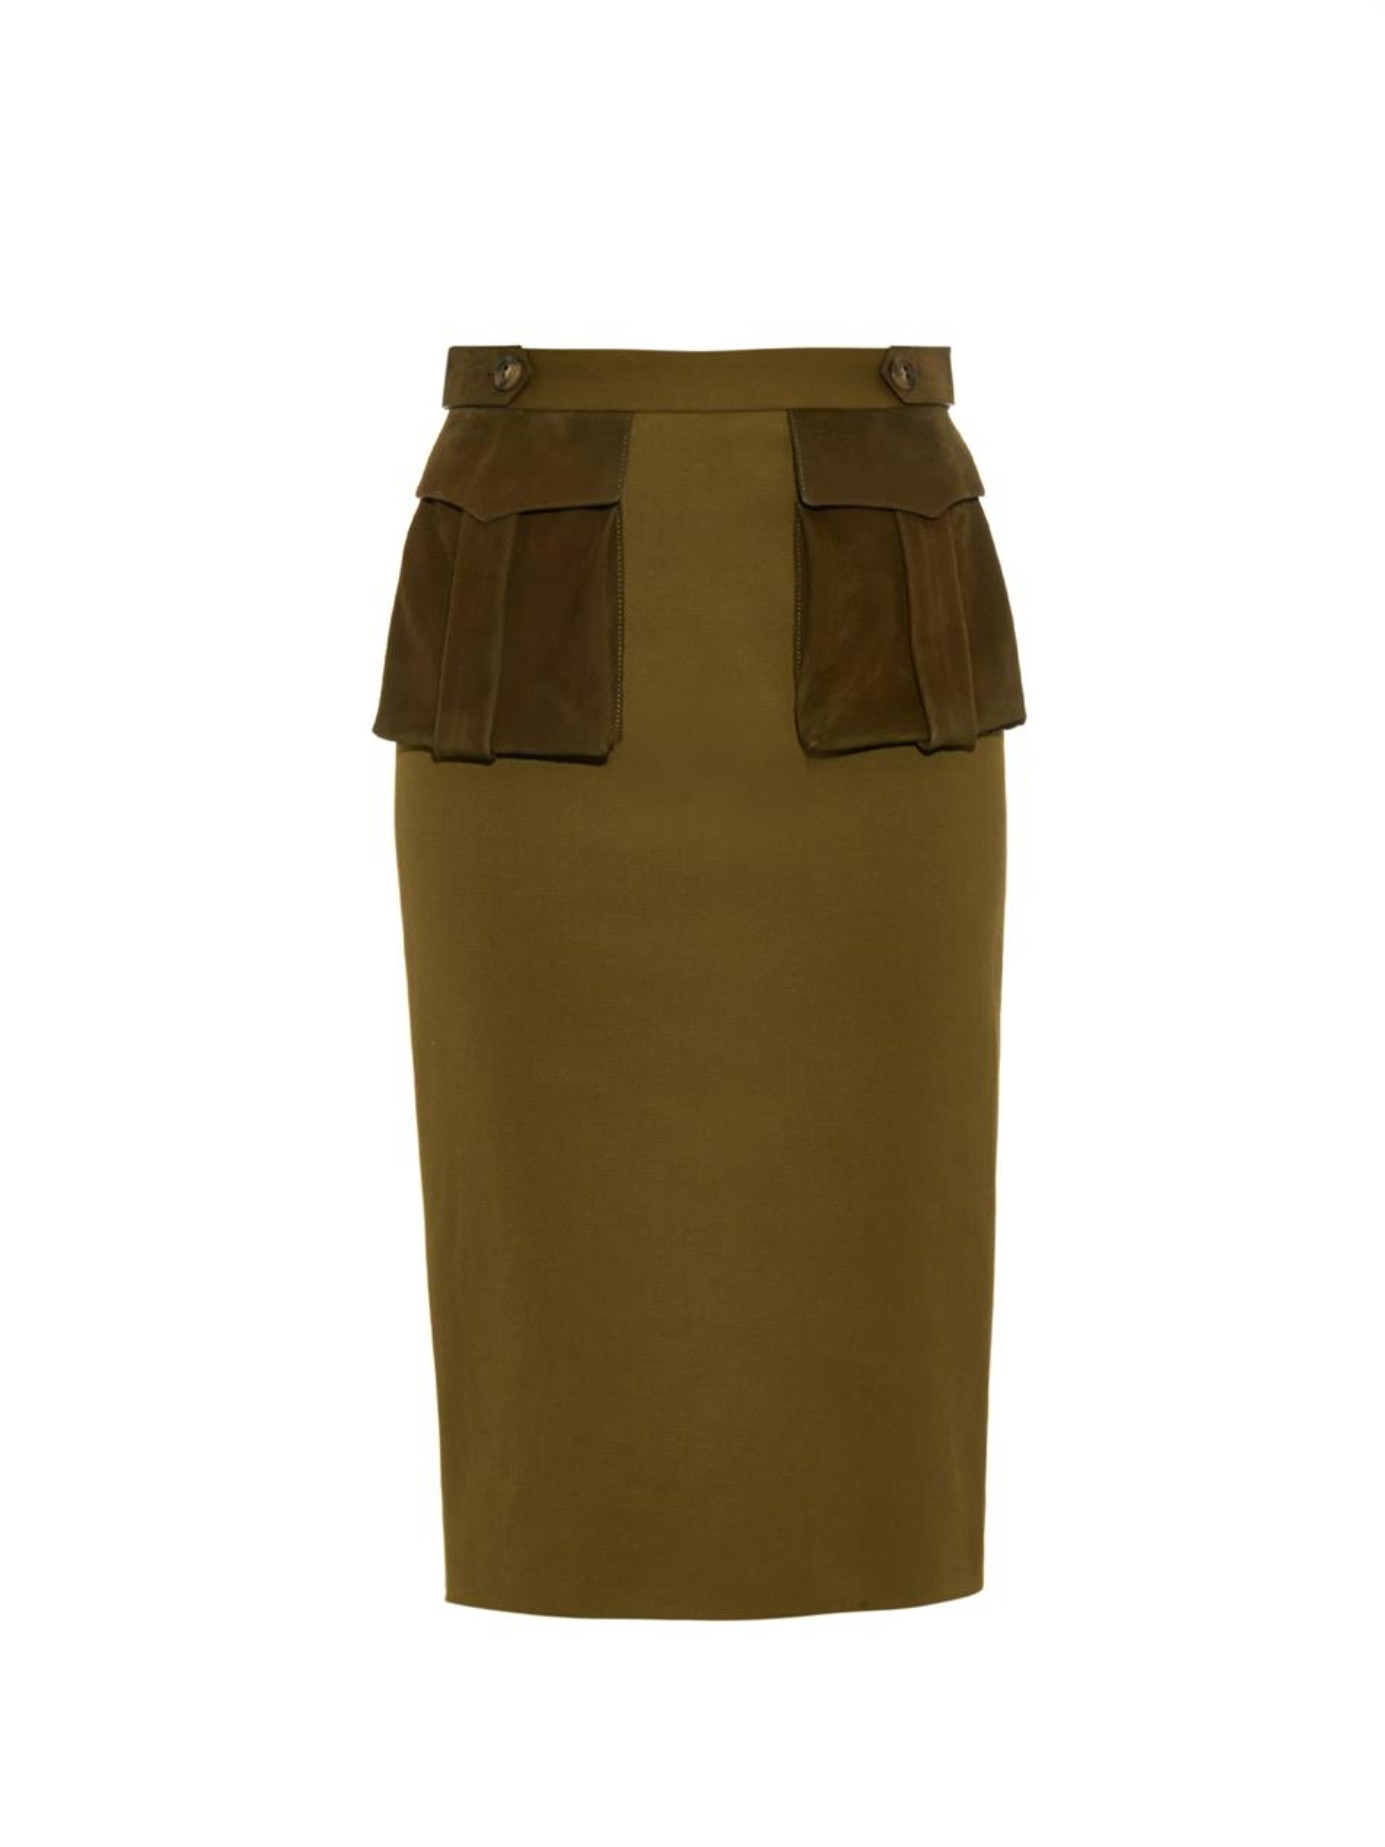 Burberry prorsum Nubuck-Pocket Drill Pencil Skirt in Natural | Lyst